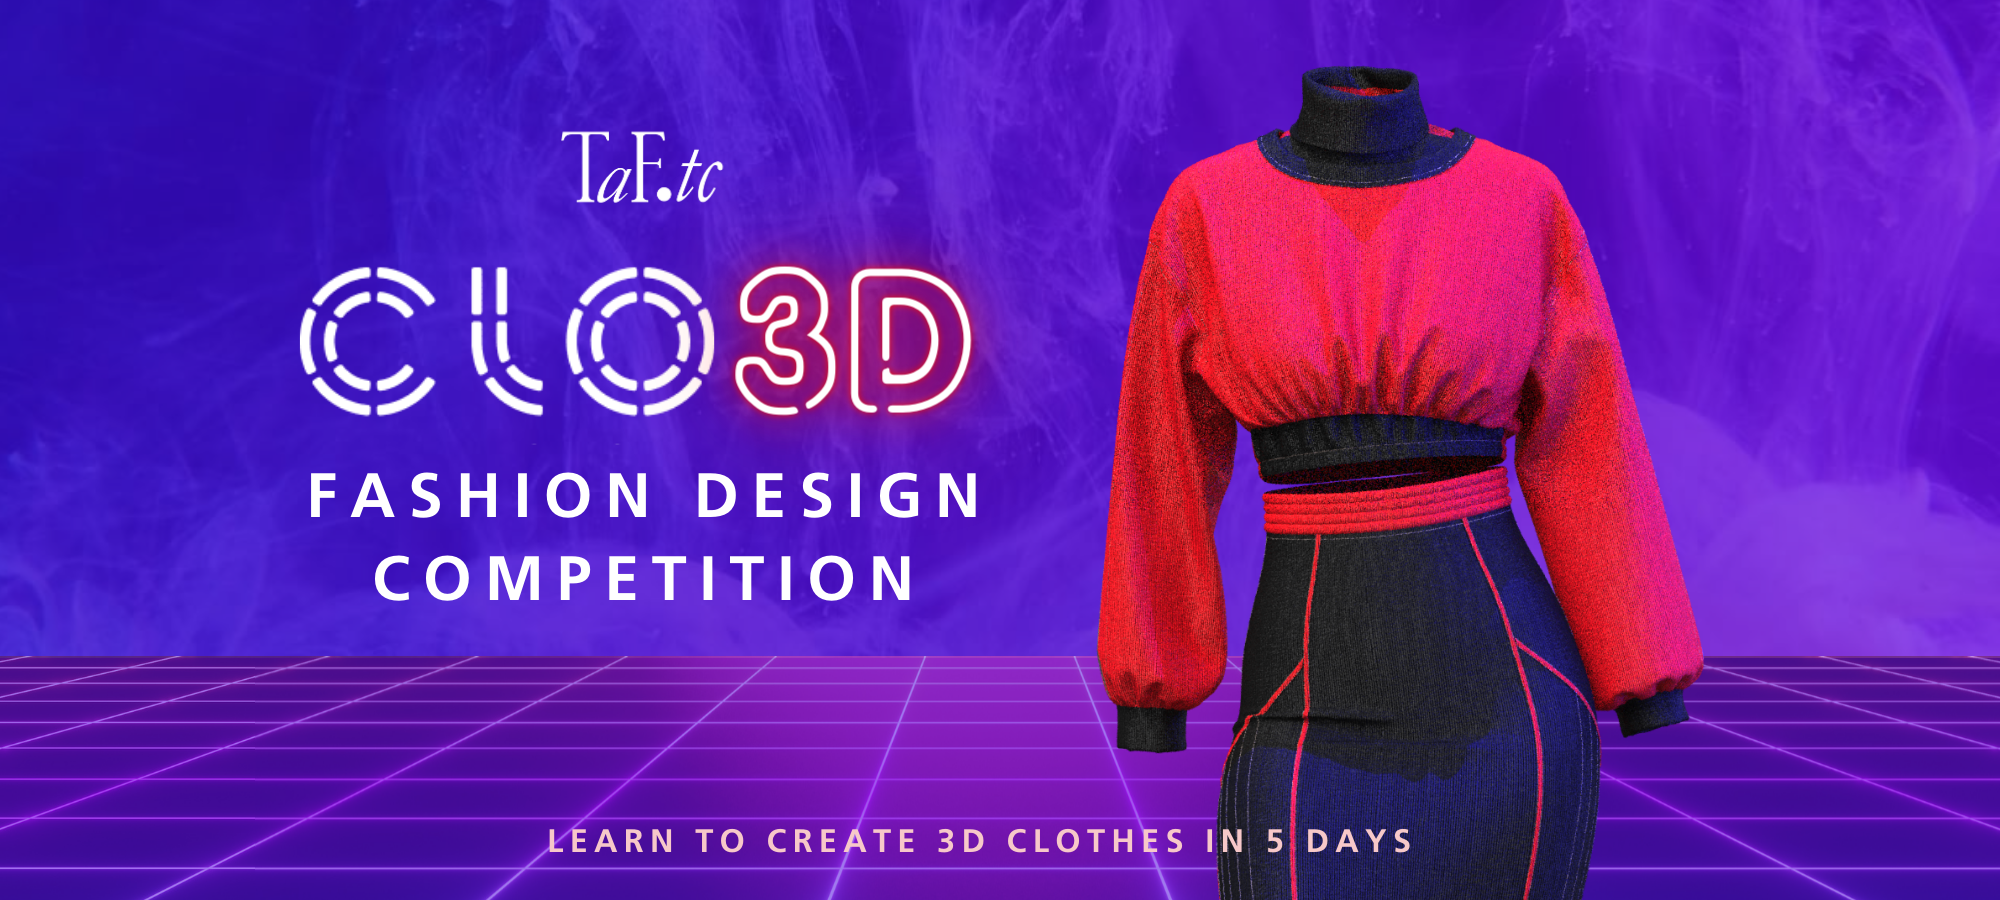 CLO-3D Fashion Design Competition 2021 Banner